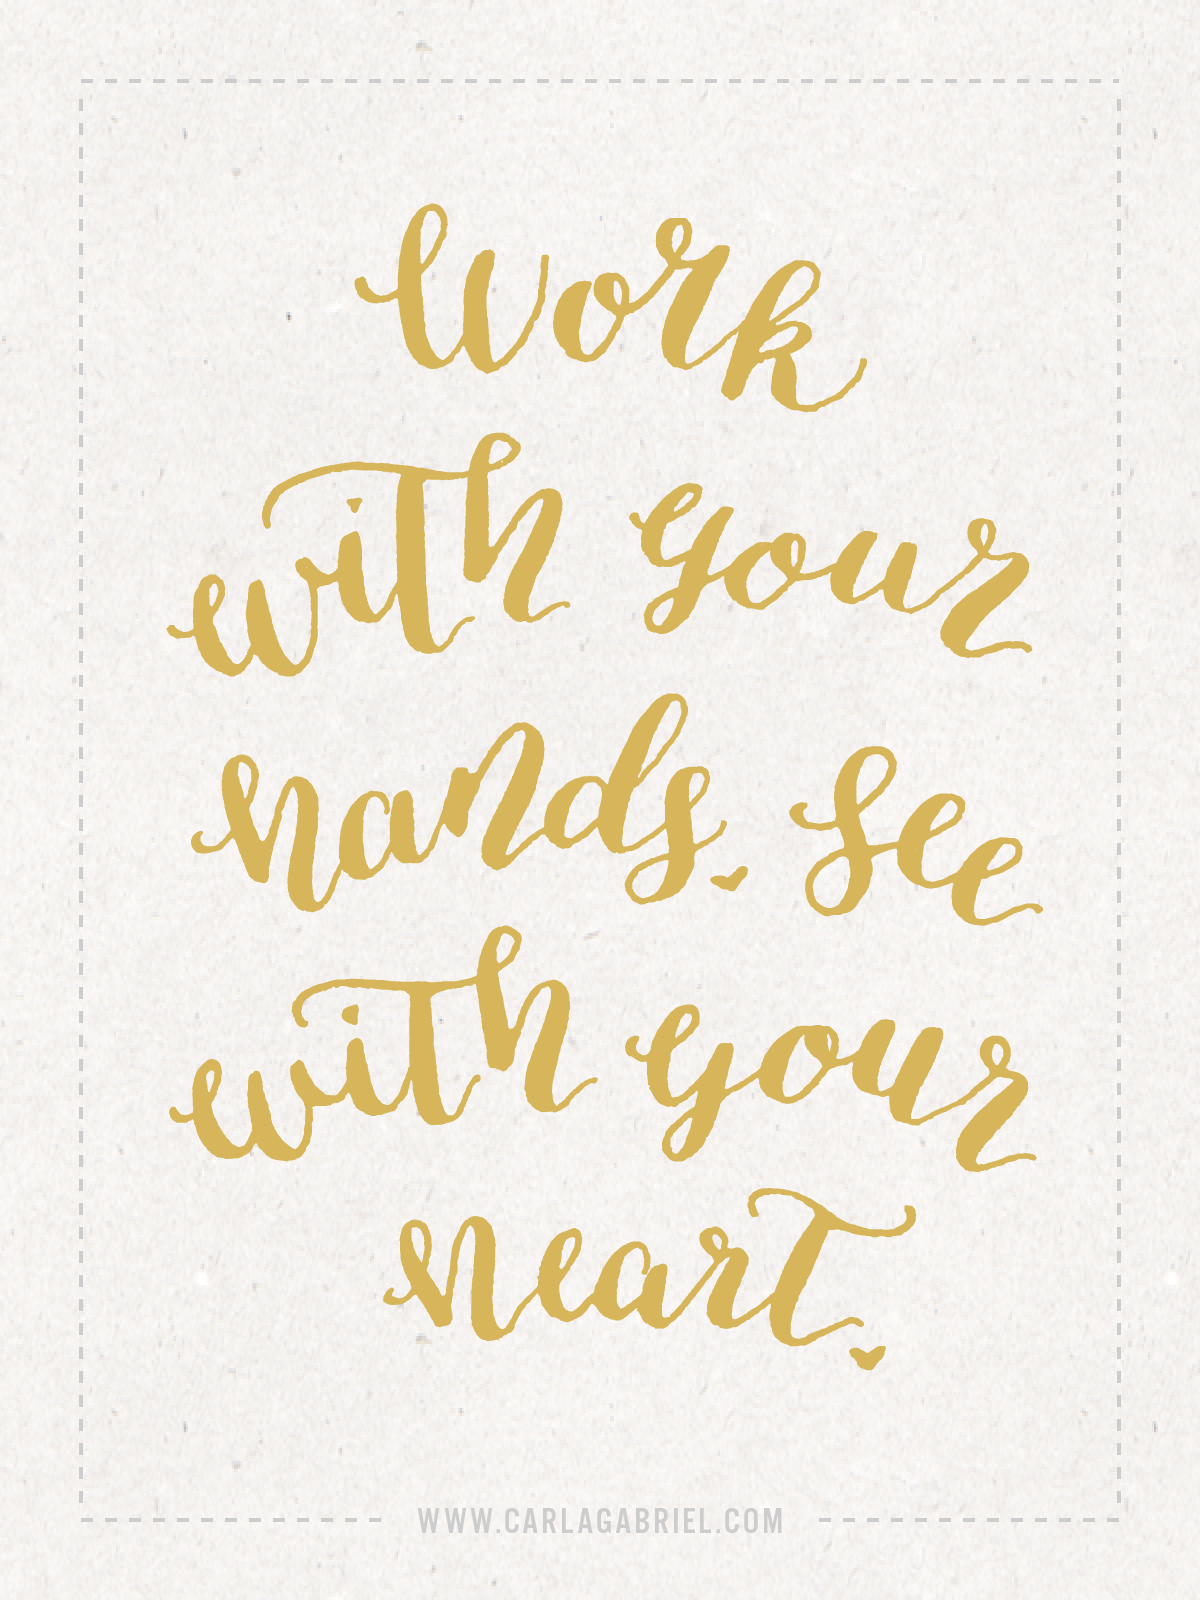 Work with your hands. See with your heart.